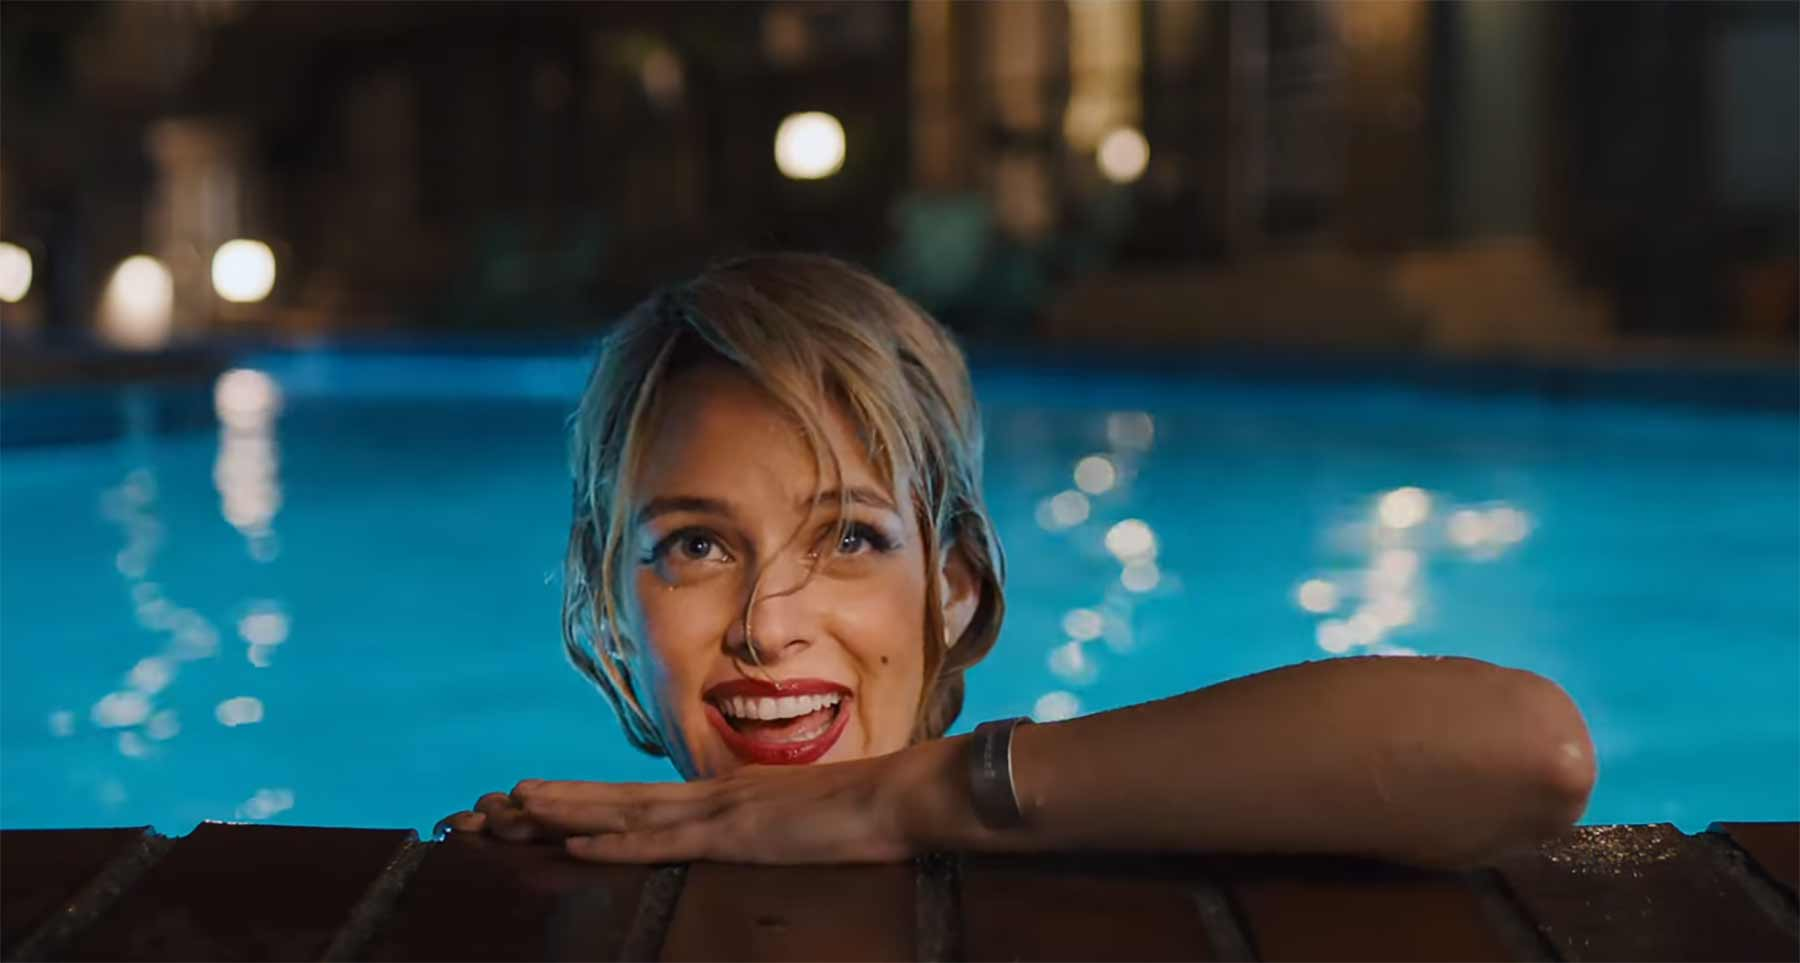 Trailer: Under The Silver Lake